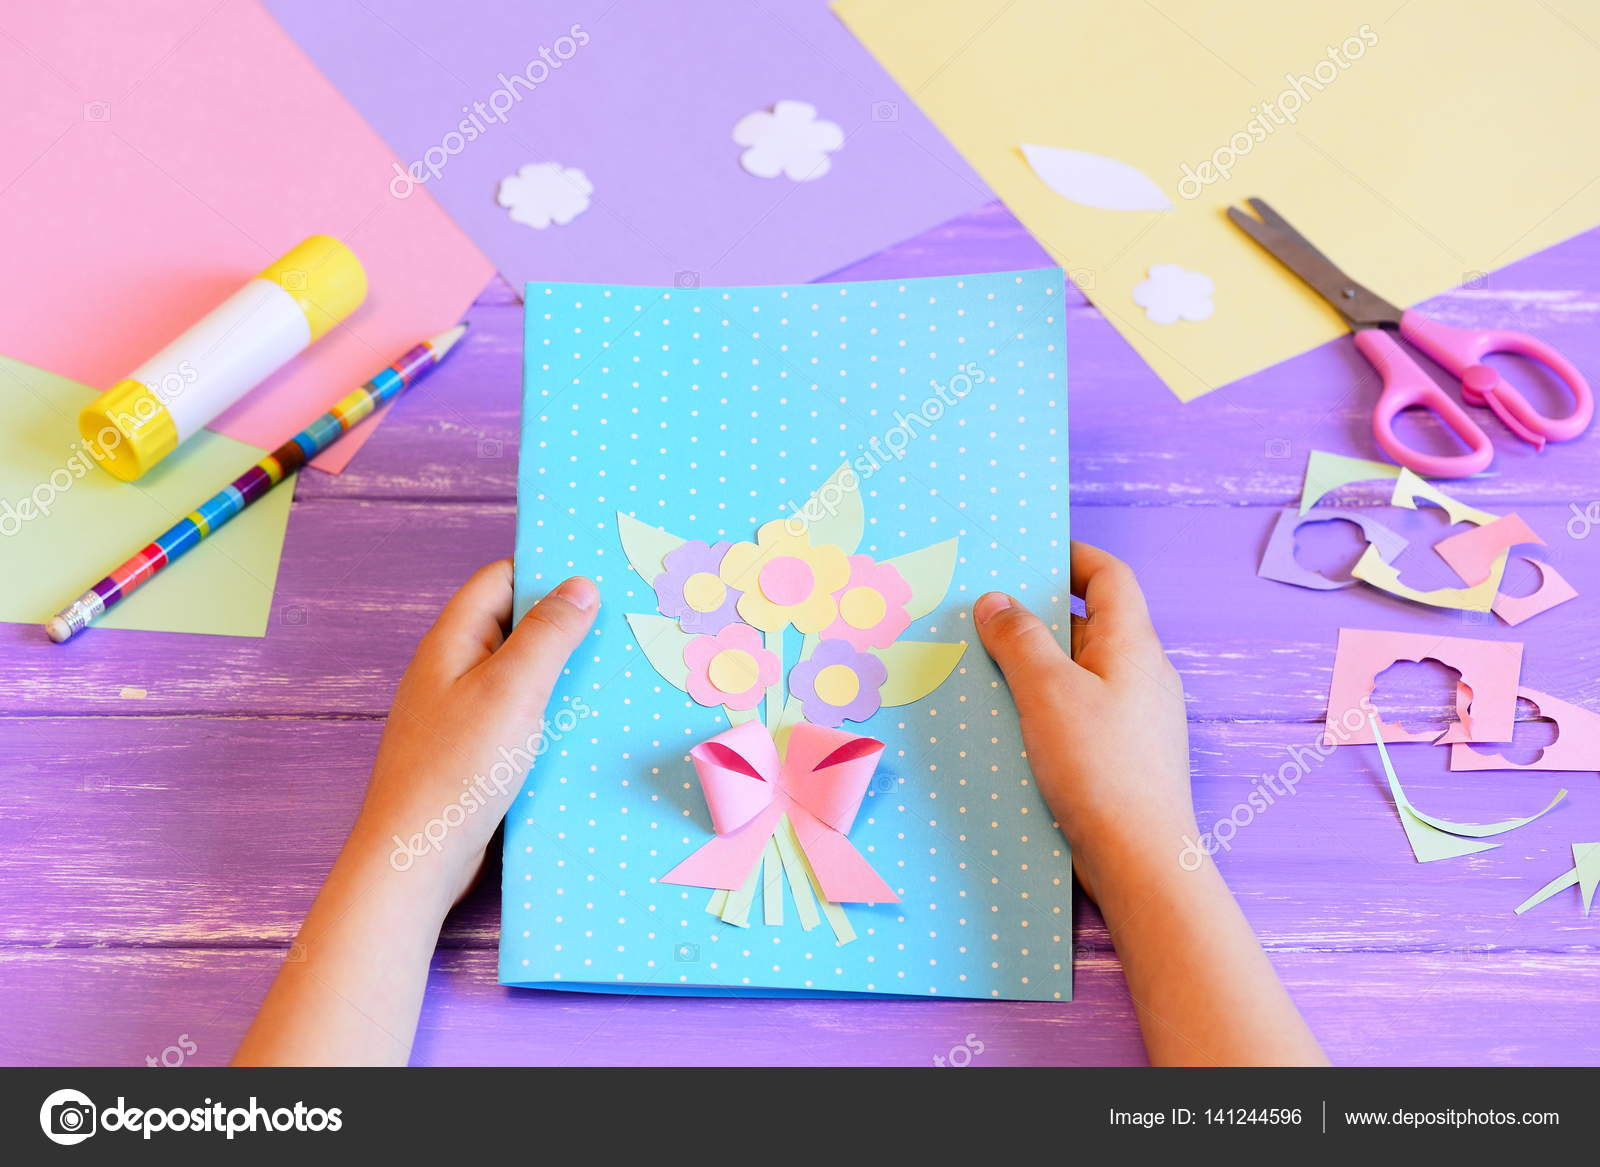 Small child made a greeting card with flowers for mom child holds a small child made a greeting card with flowers for mom child holds a card in his hands tools and materials for childrens art creativity on table m4hsunfo